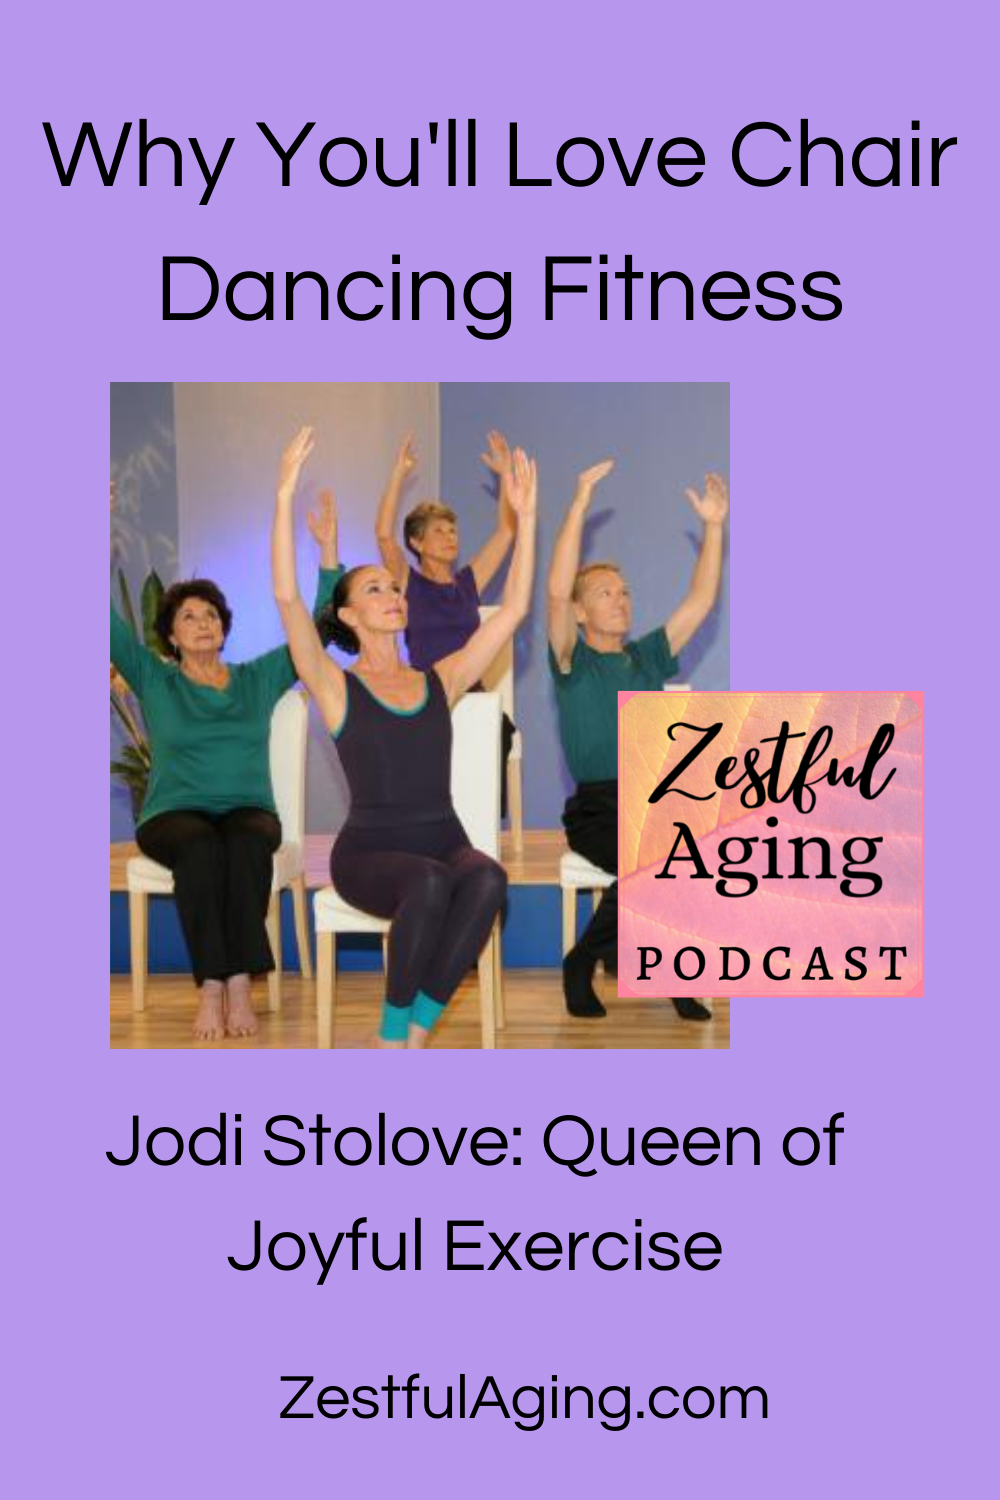 Chair Dancing Fitness Is Joyful Exercise In 2020 Exercise Fitness Podcasts